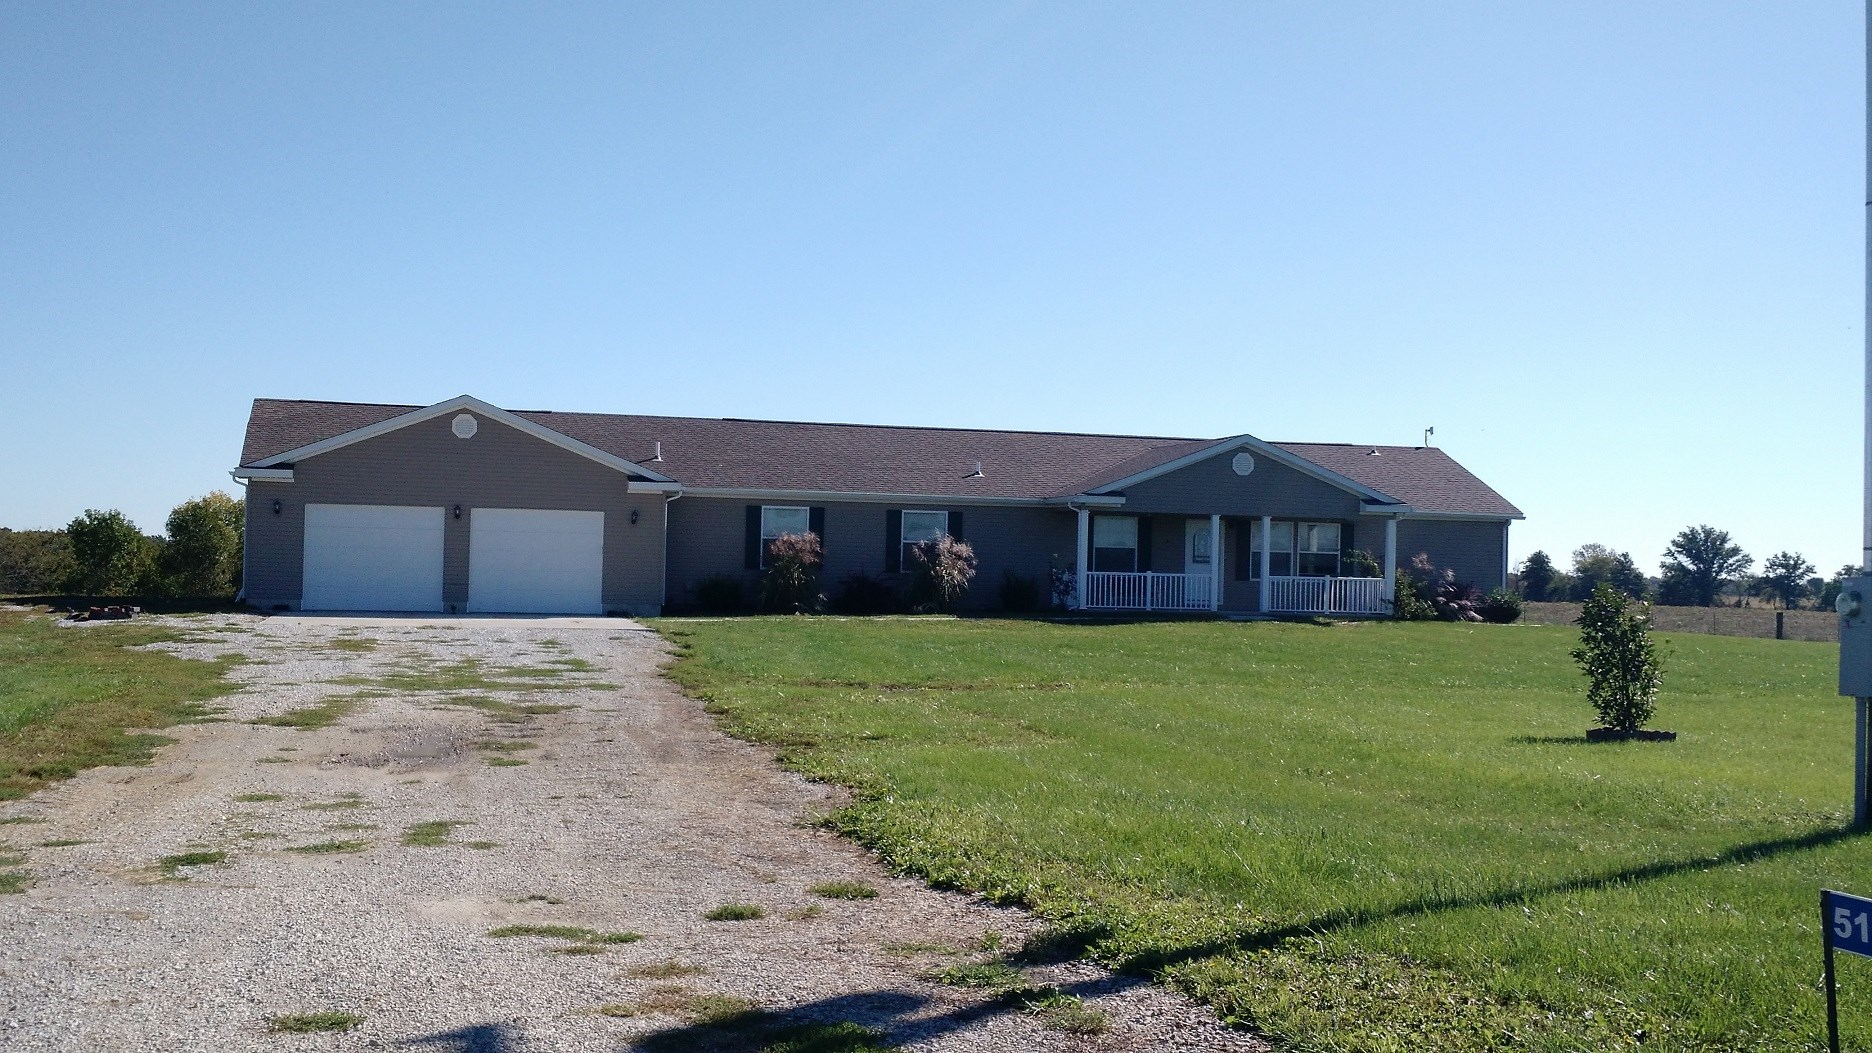 HOME, ACREAGE, & SHOP FOR SALE NORTHEAST MO, RURAL HOME MO